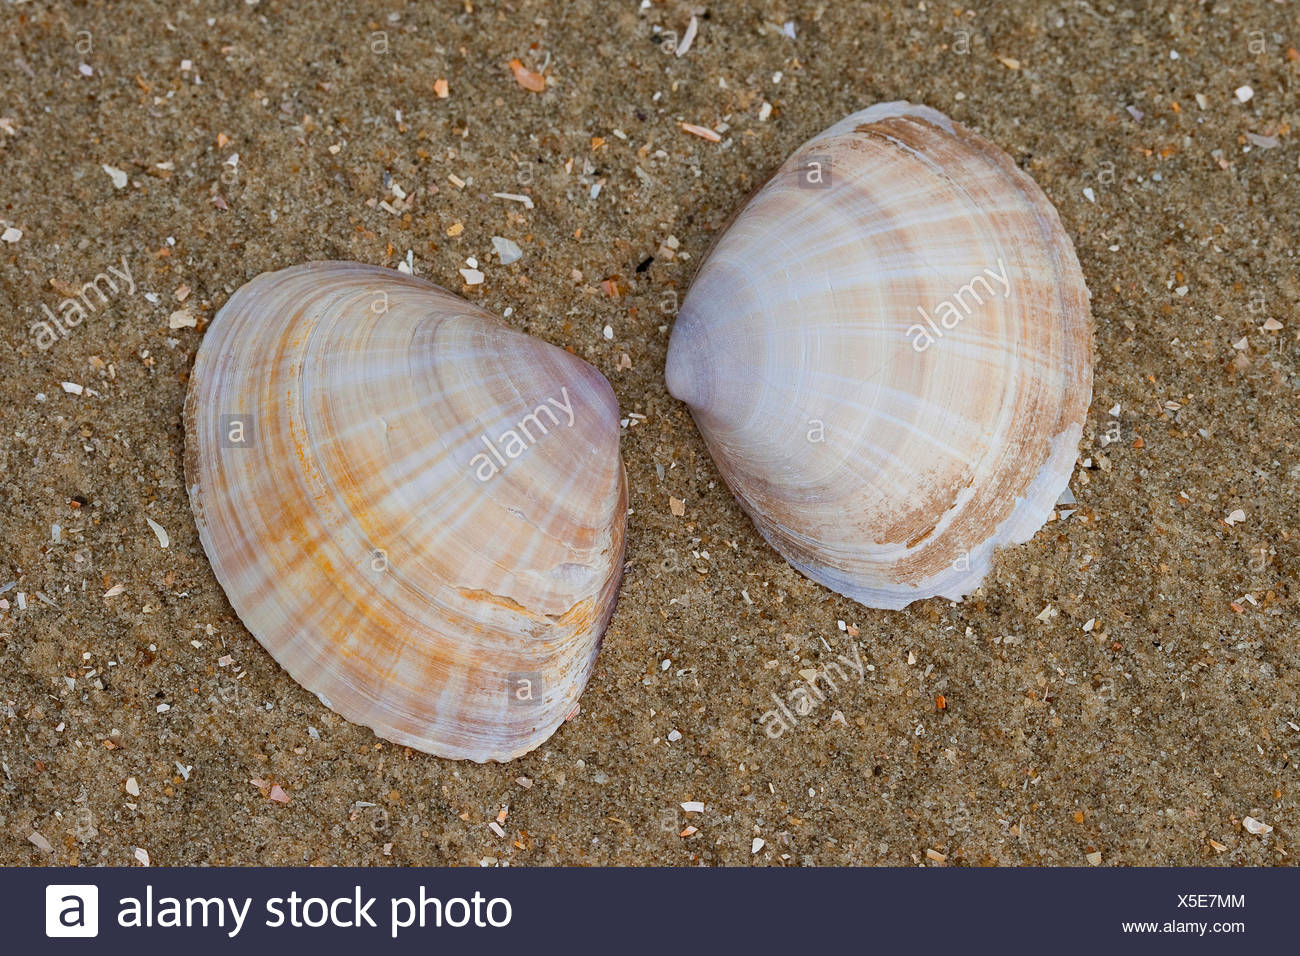 White trough clam, Rayed trough shell, Rayed trough-shell (Mactra corallina, Mactra stultorum, Mactra cinerea), shell on the beach, Germany - Stock Image